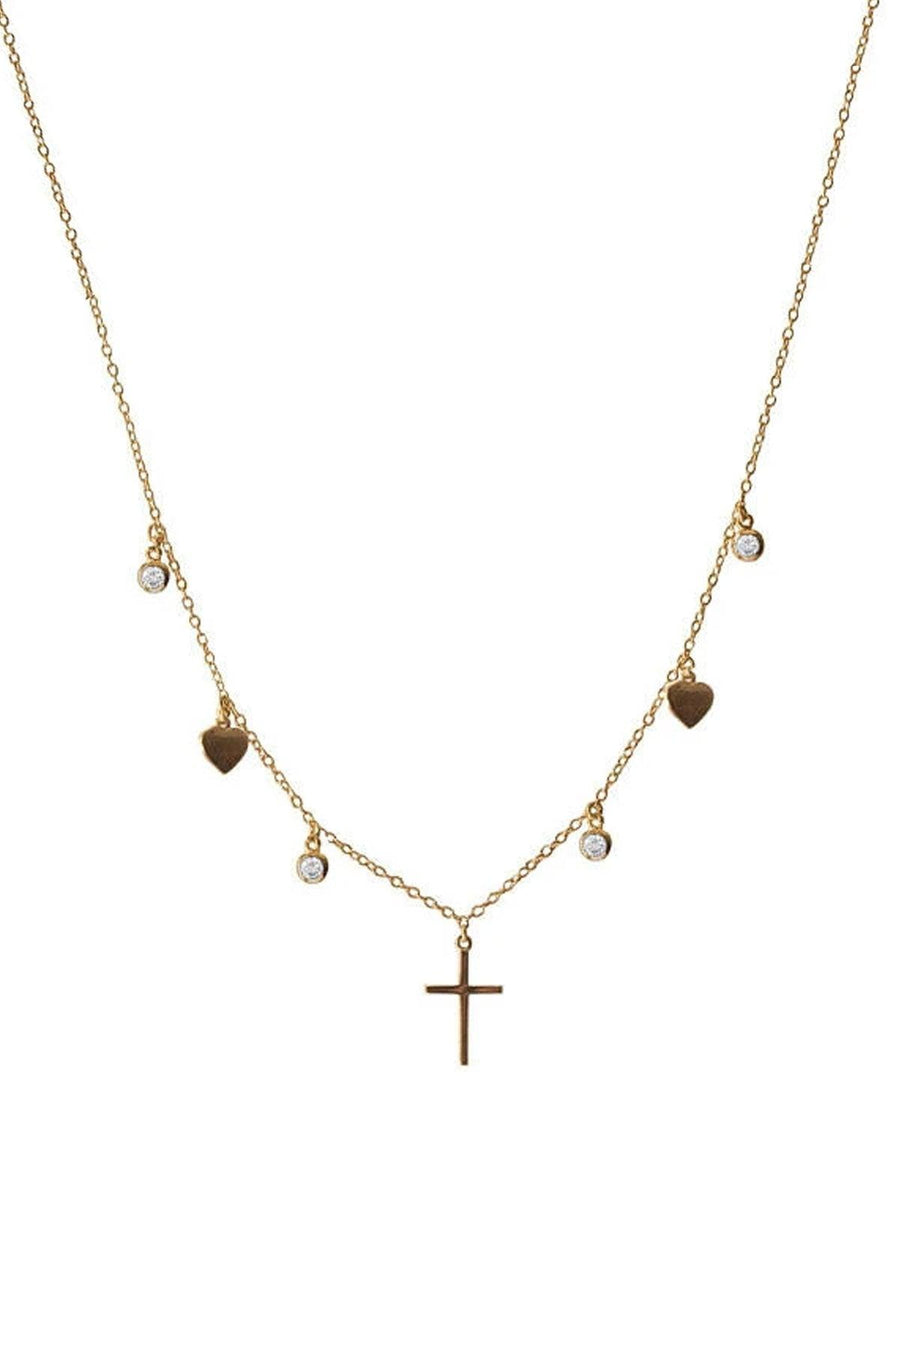 Cross Heart Choker - OHZO JEWELLERY BY J